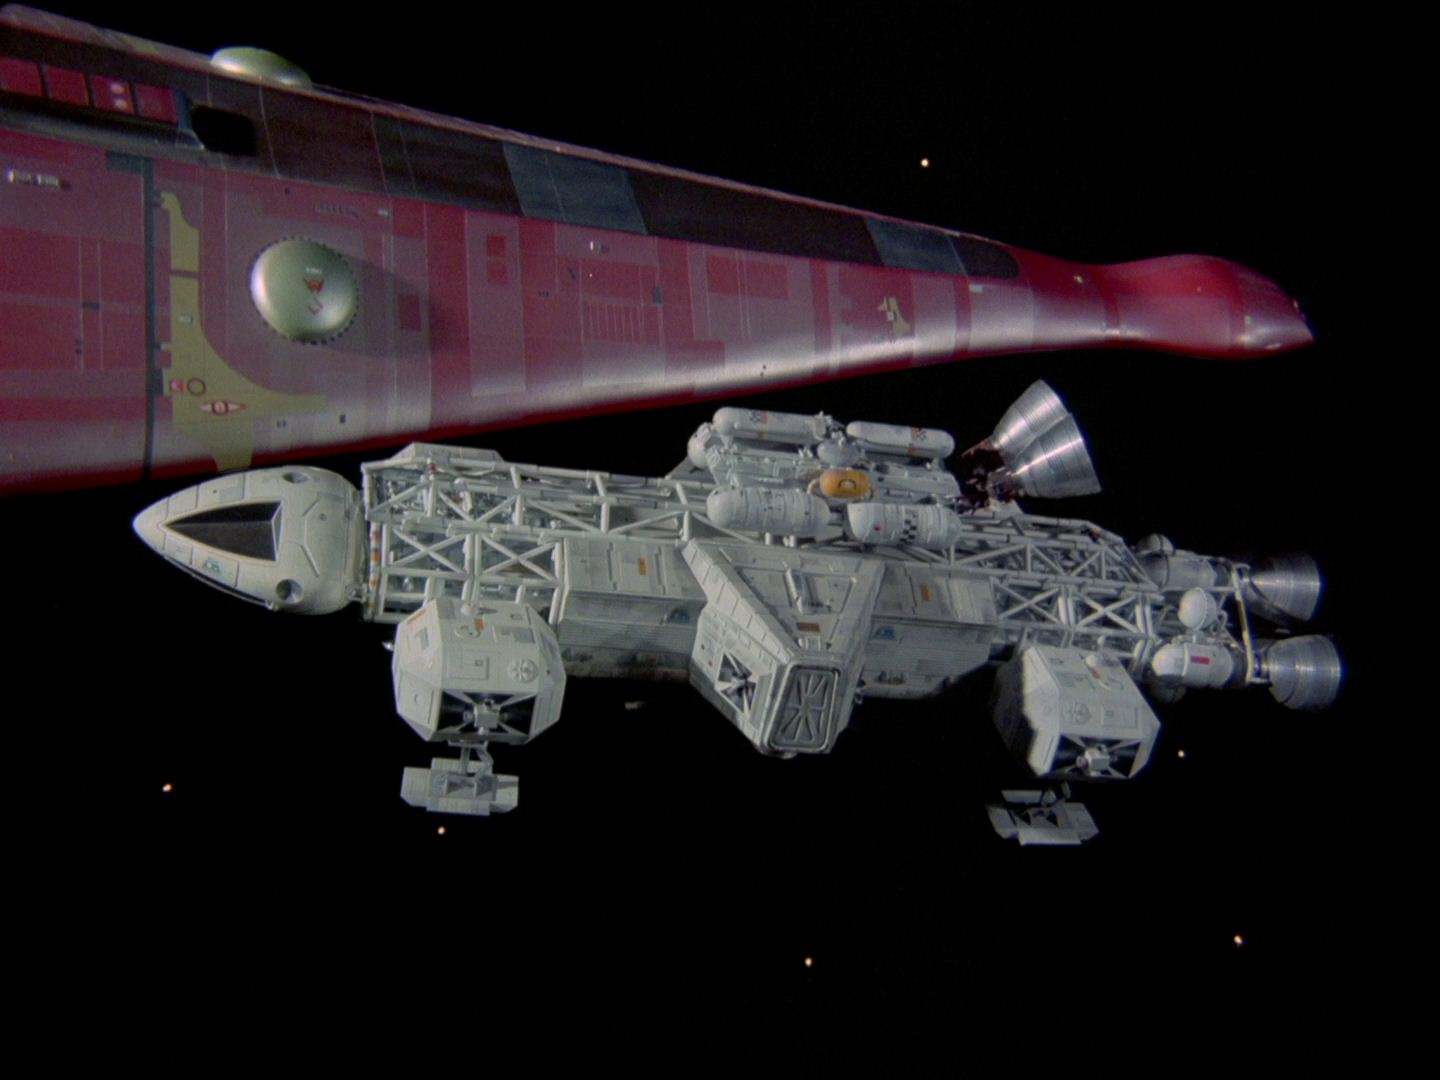 Alien Spaceships 3 Space 1999 Continuity Guide